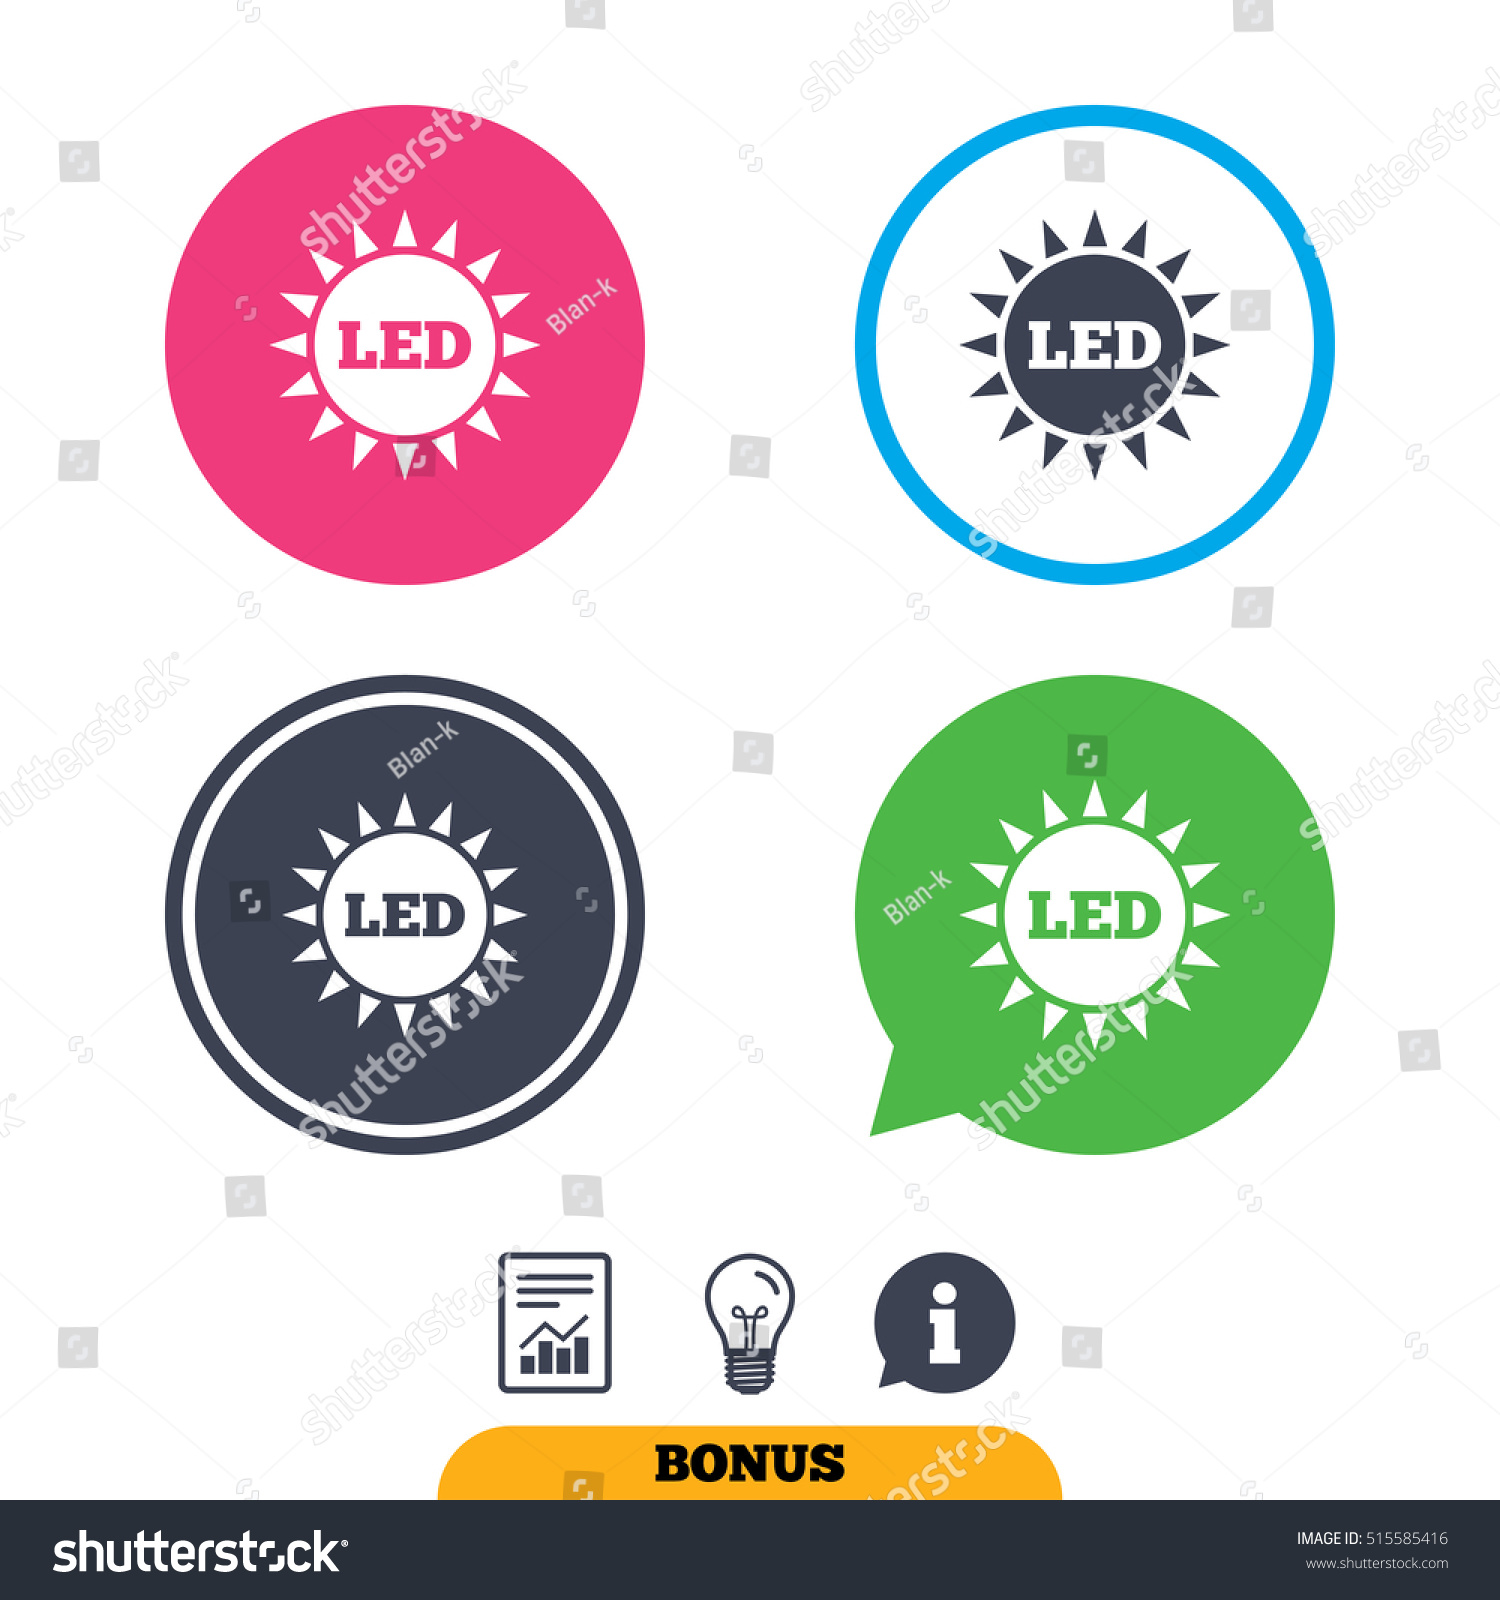 Diode Images Stock Photos Vectors Shutterstock Electronic Circuit Symbols Vector Illustration 1445110 Led Light Sun Icon Energy Symbol 515585416